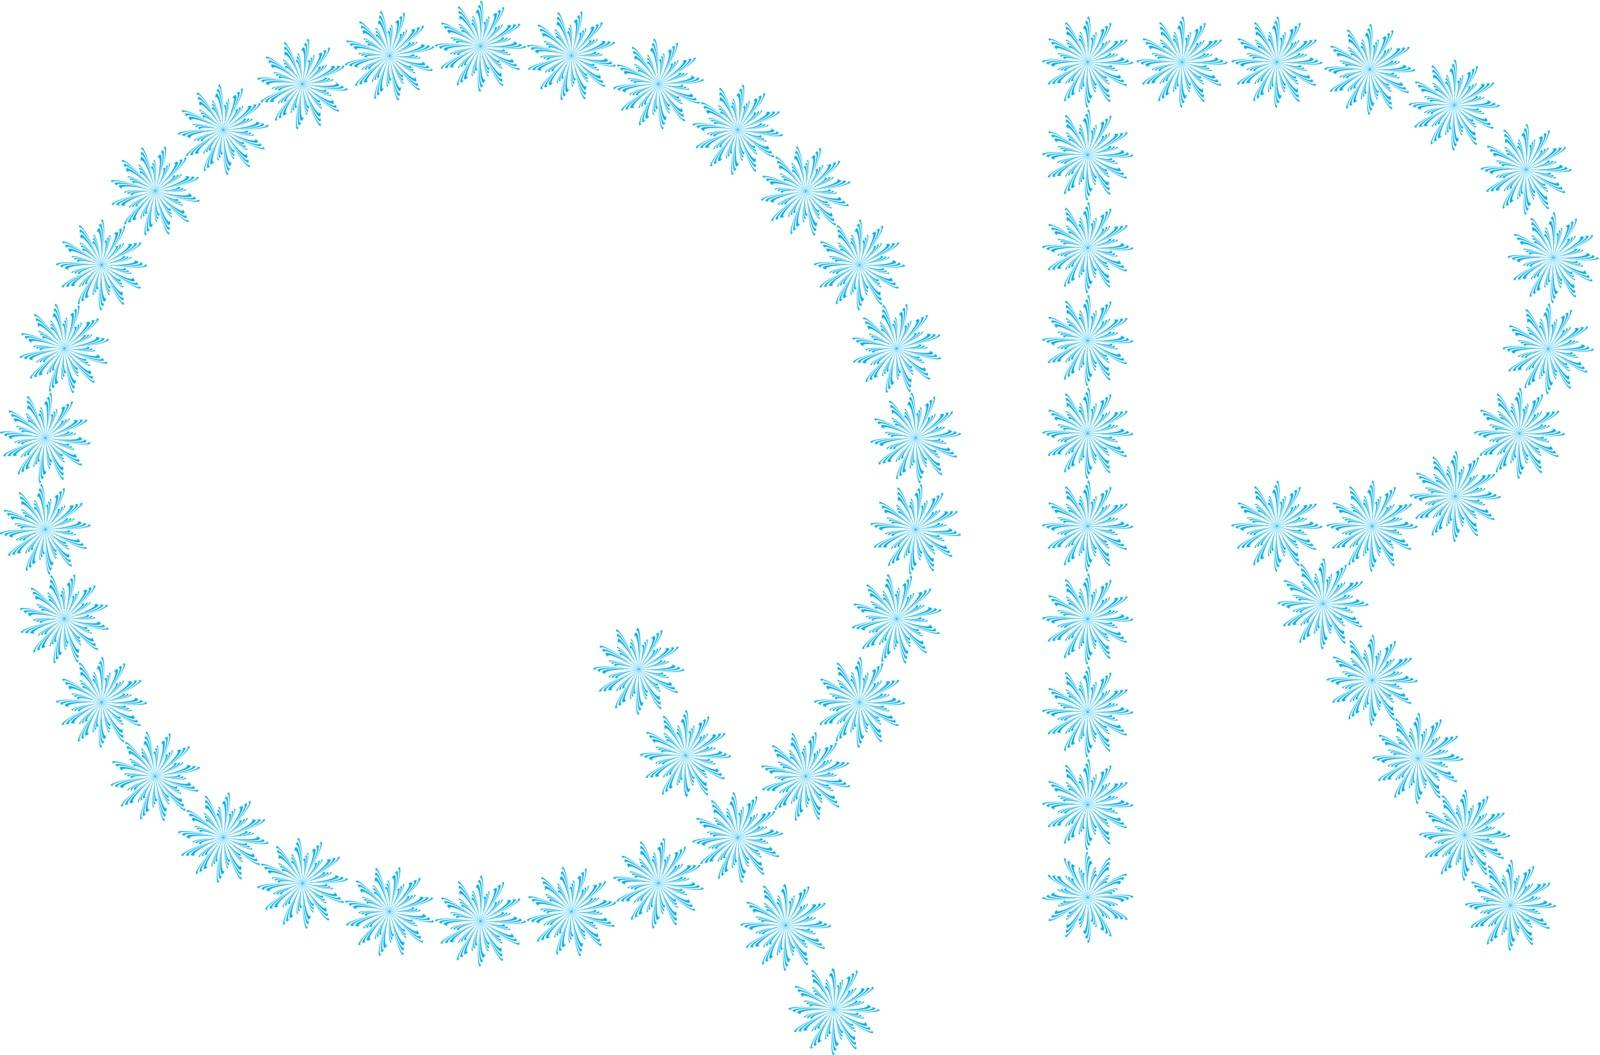 """illustration of the letter """"Q, R"""" formed by snowflakes"""